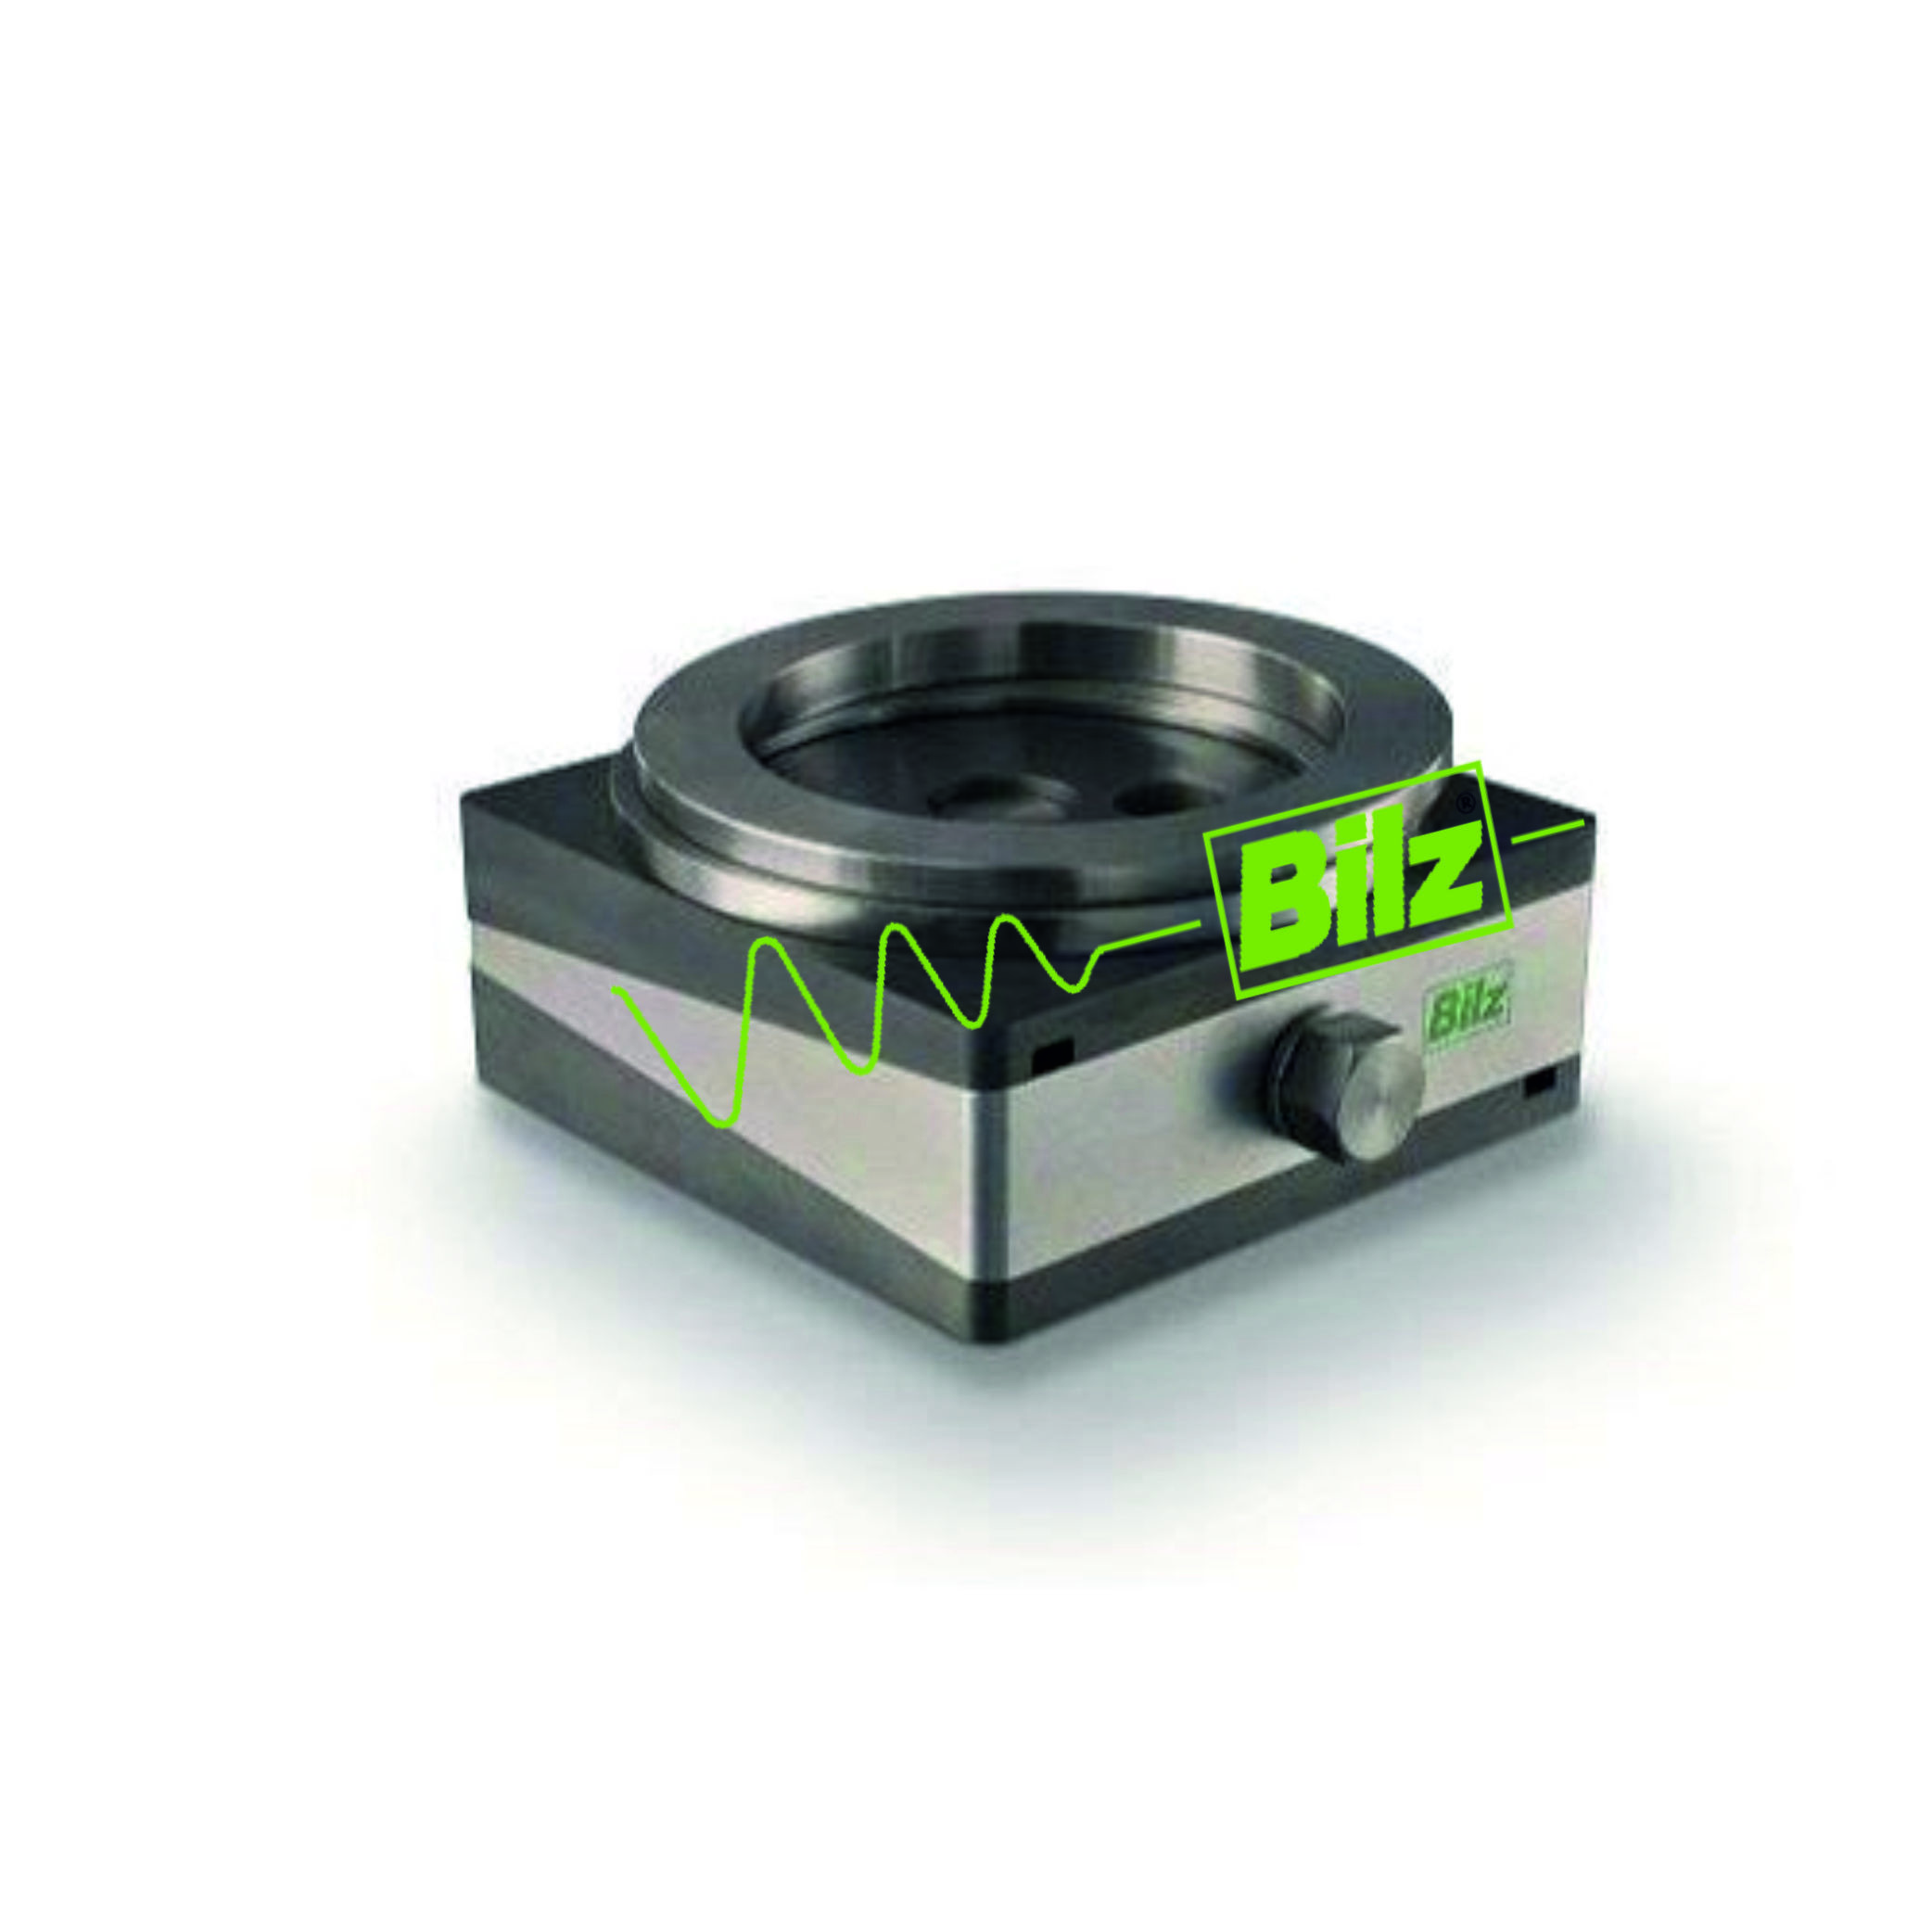 Bilz Anti Vibration Wedge Mount